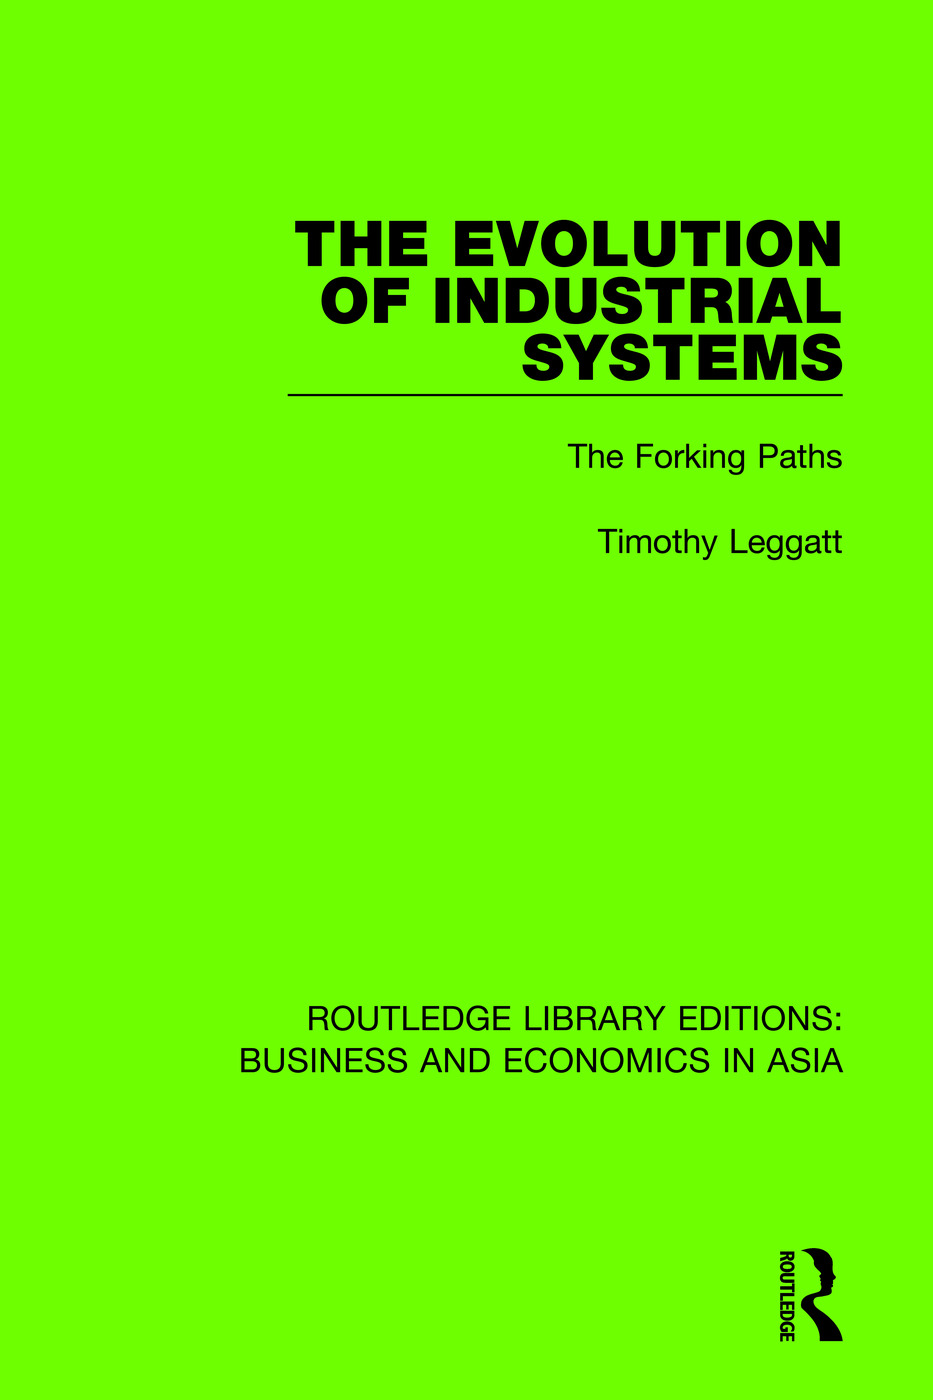 The Evolution of Industrial Systems: The Forking Paths book cover